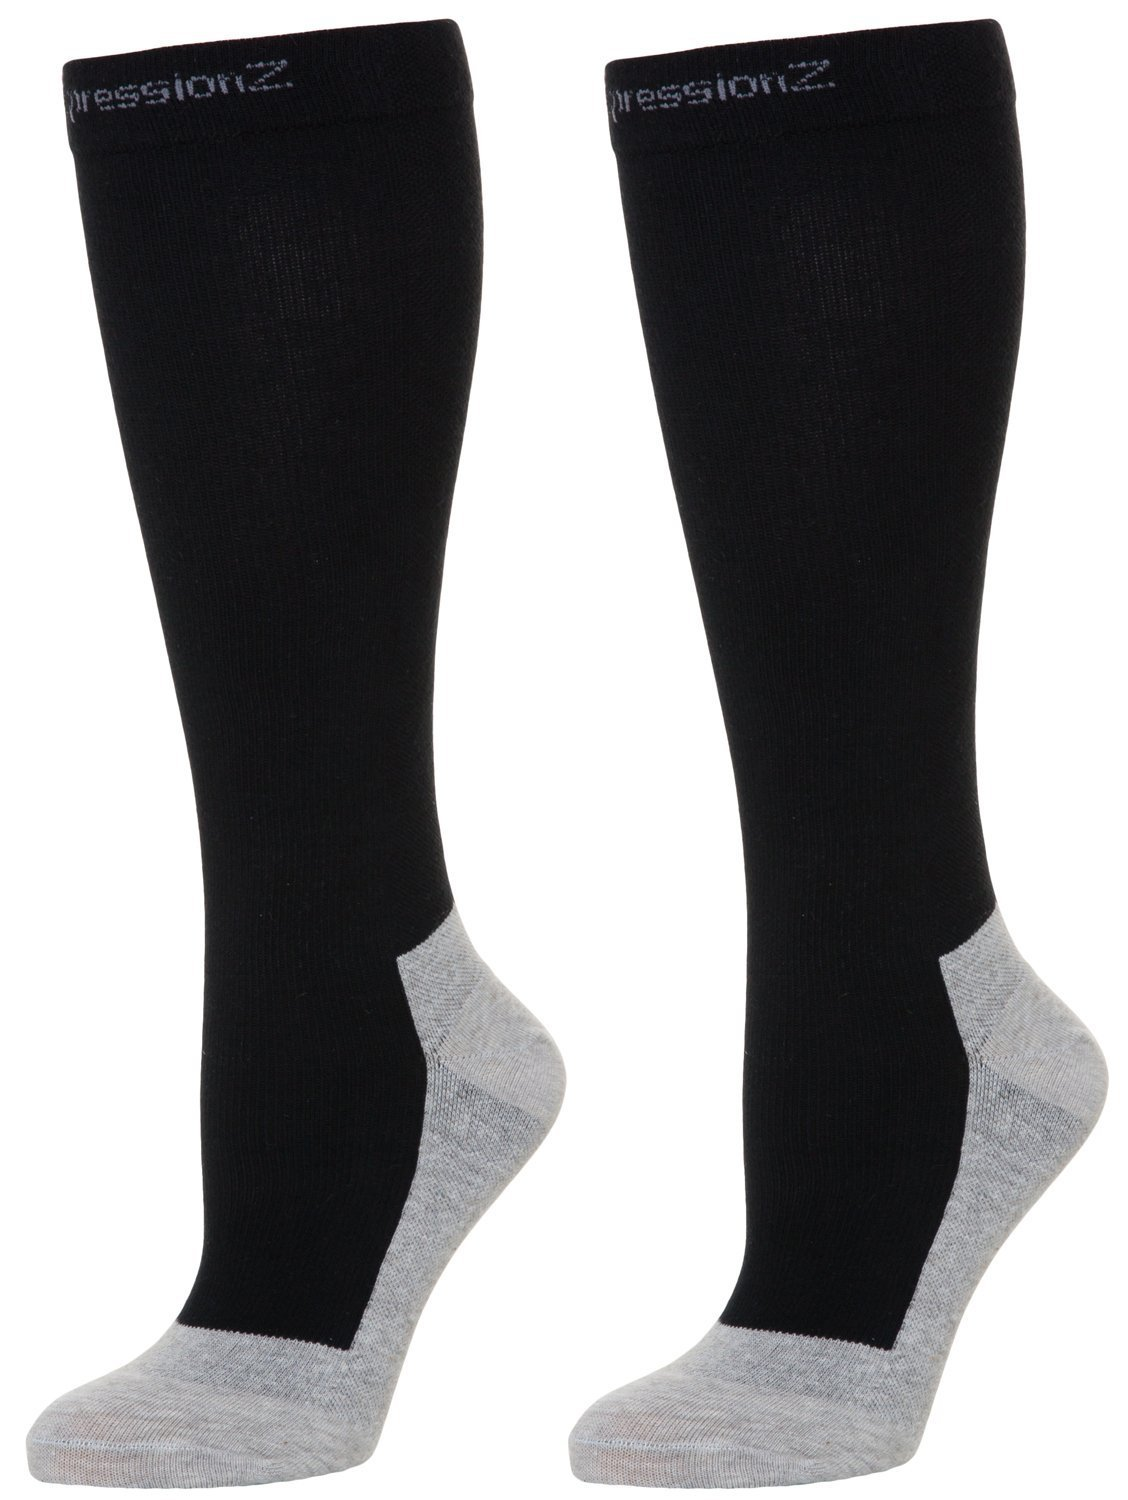 Compression Socks 30-40mmHg (1 Pair - Black L) - Best High Performance Athletic Running Socks - Men & Women